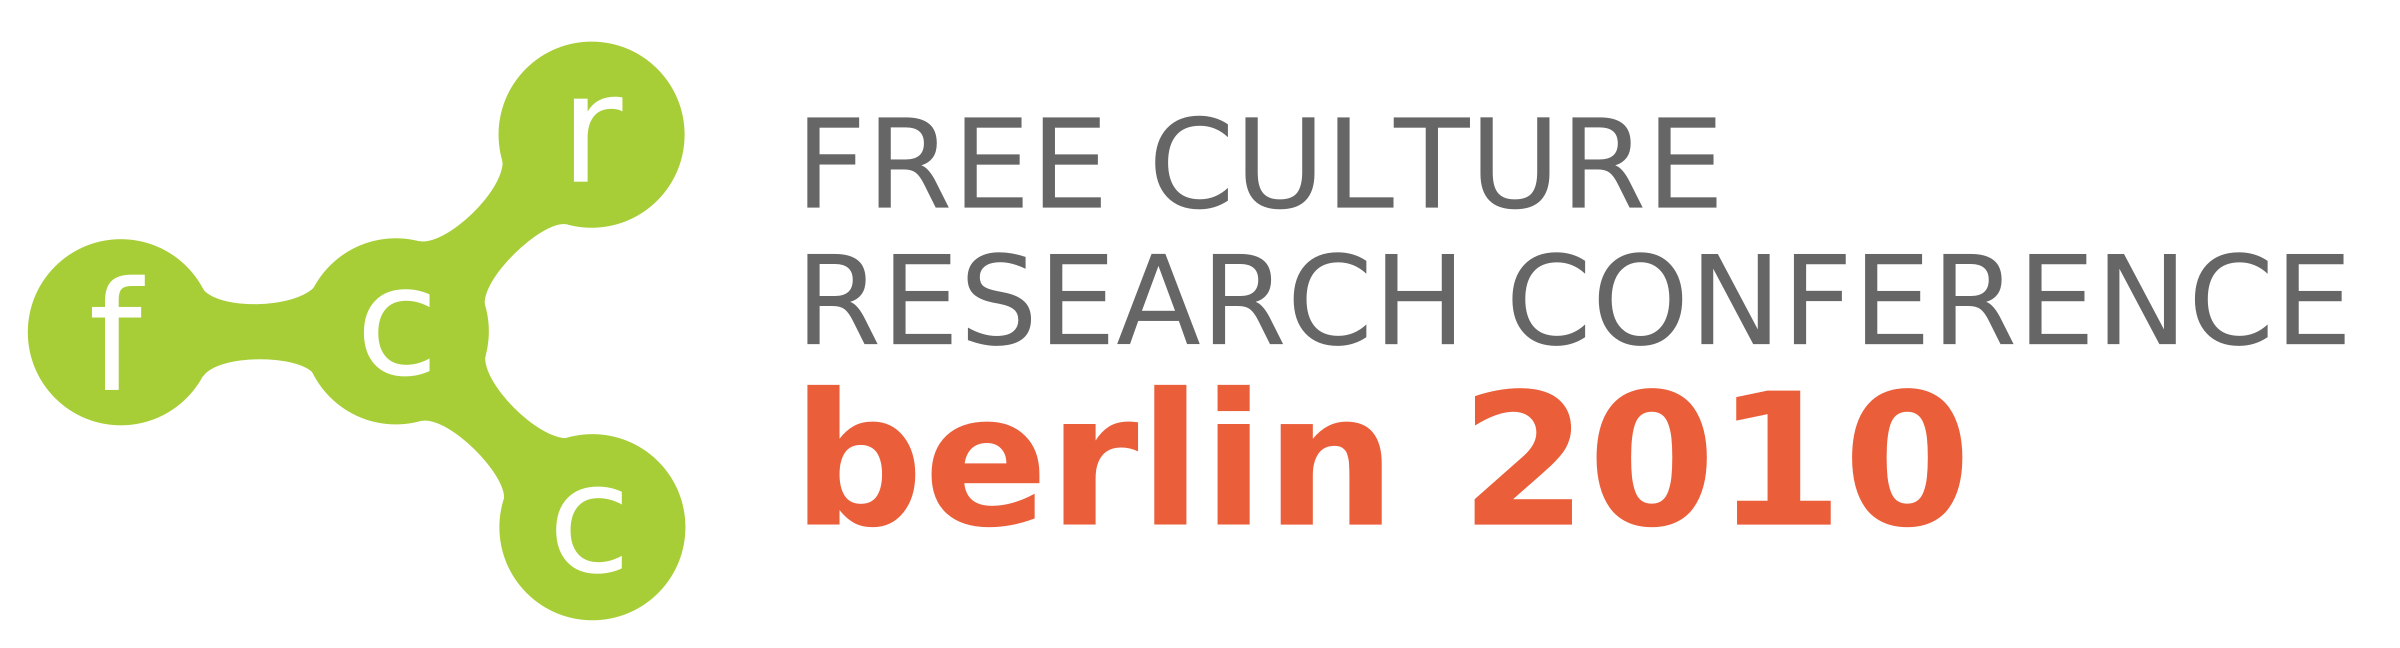 Free Culture Research Conference Logo 4.1 by hank0071